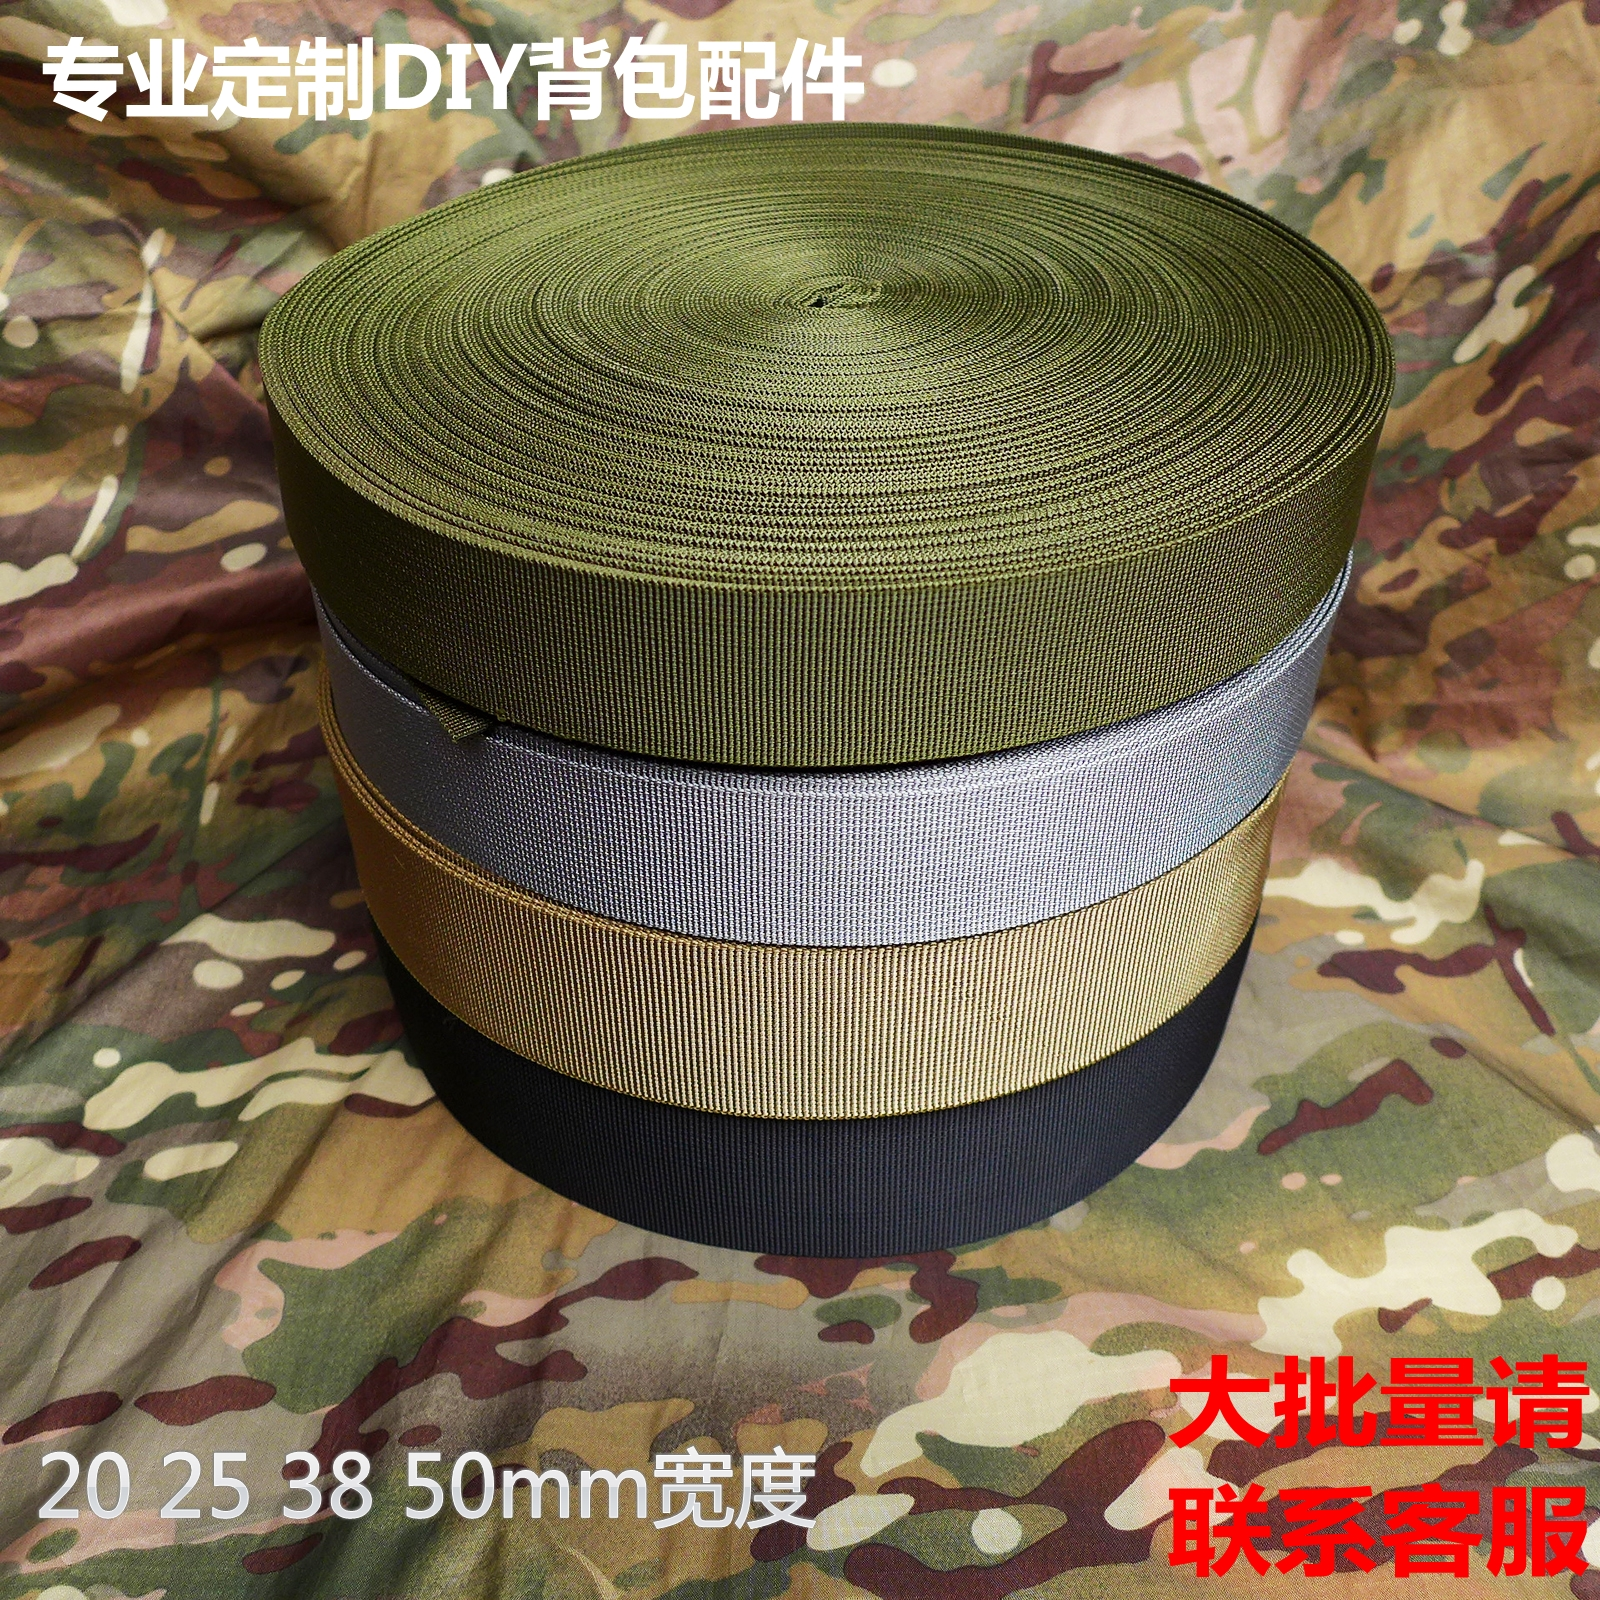 Nylon Ribbon Backpack Accessories Strap MOLLE Belt Military Fan Custom DIY 20 25 38 50mm